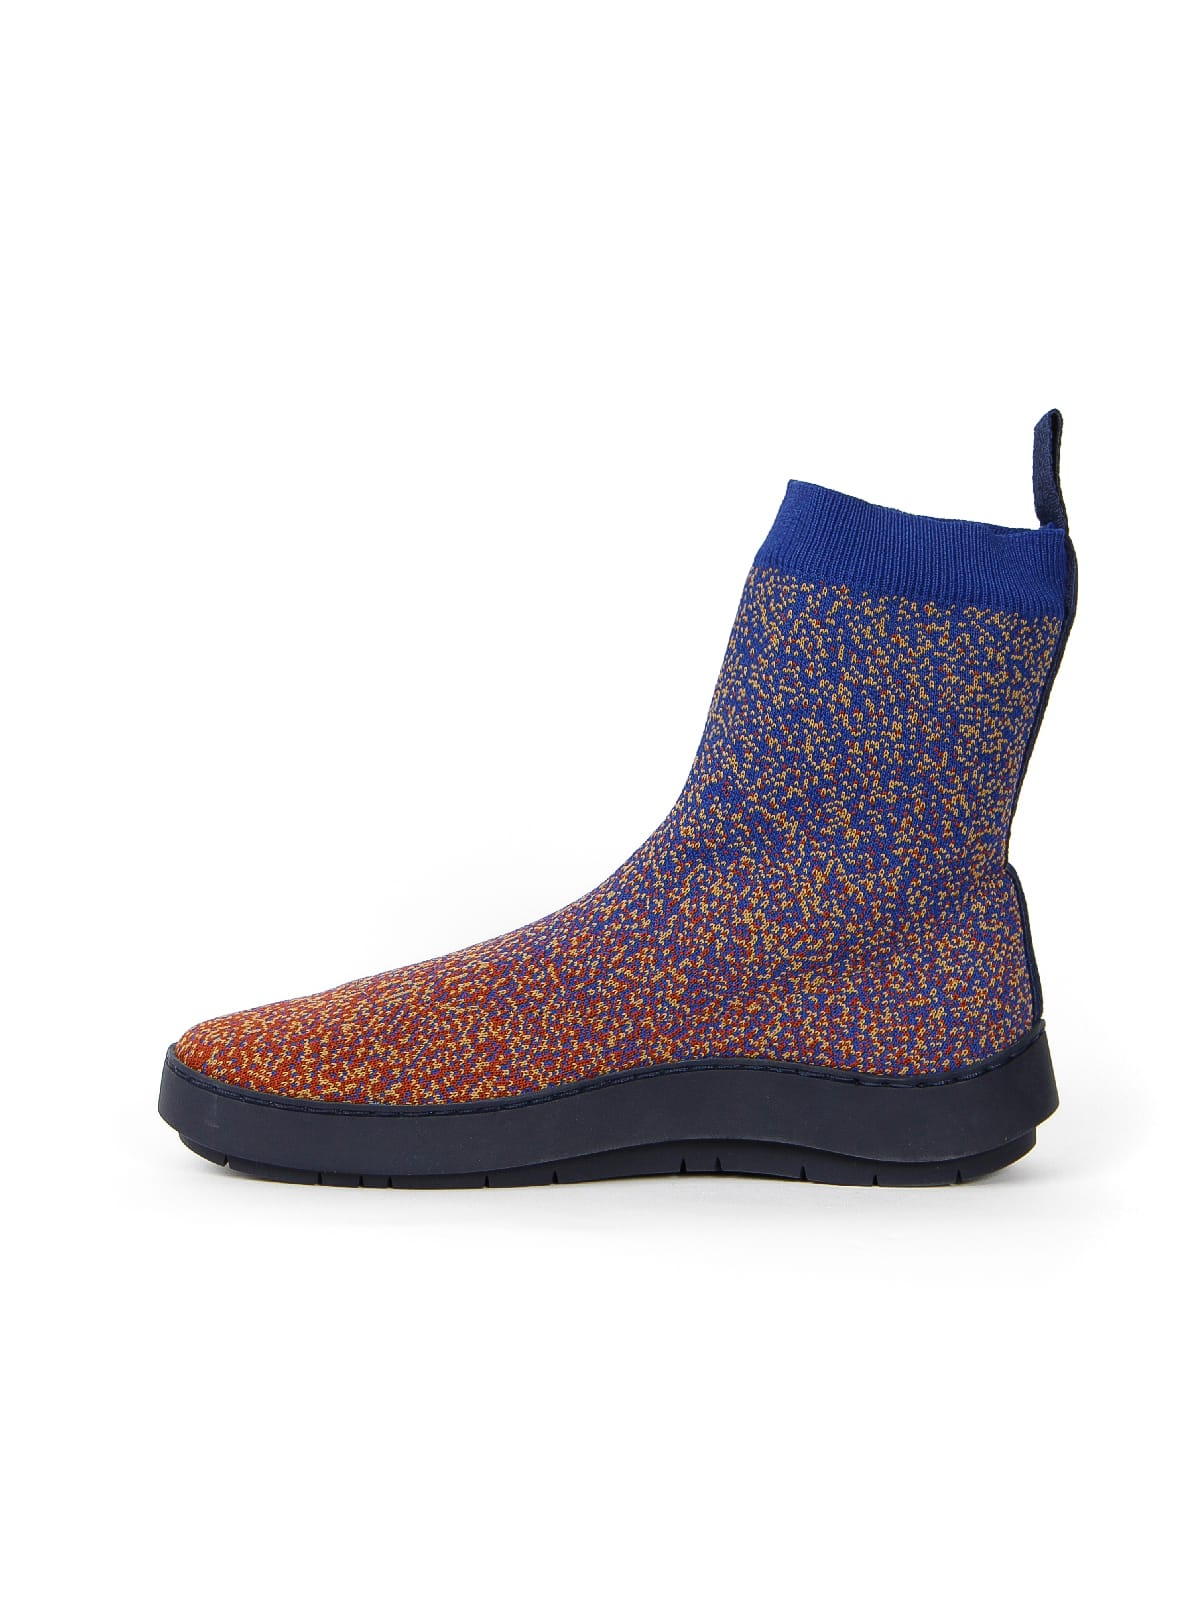 3D knitted sockboot Sparkle foxy links